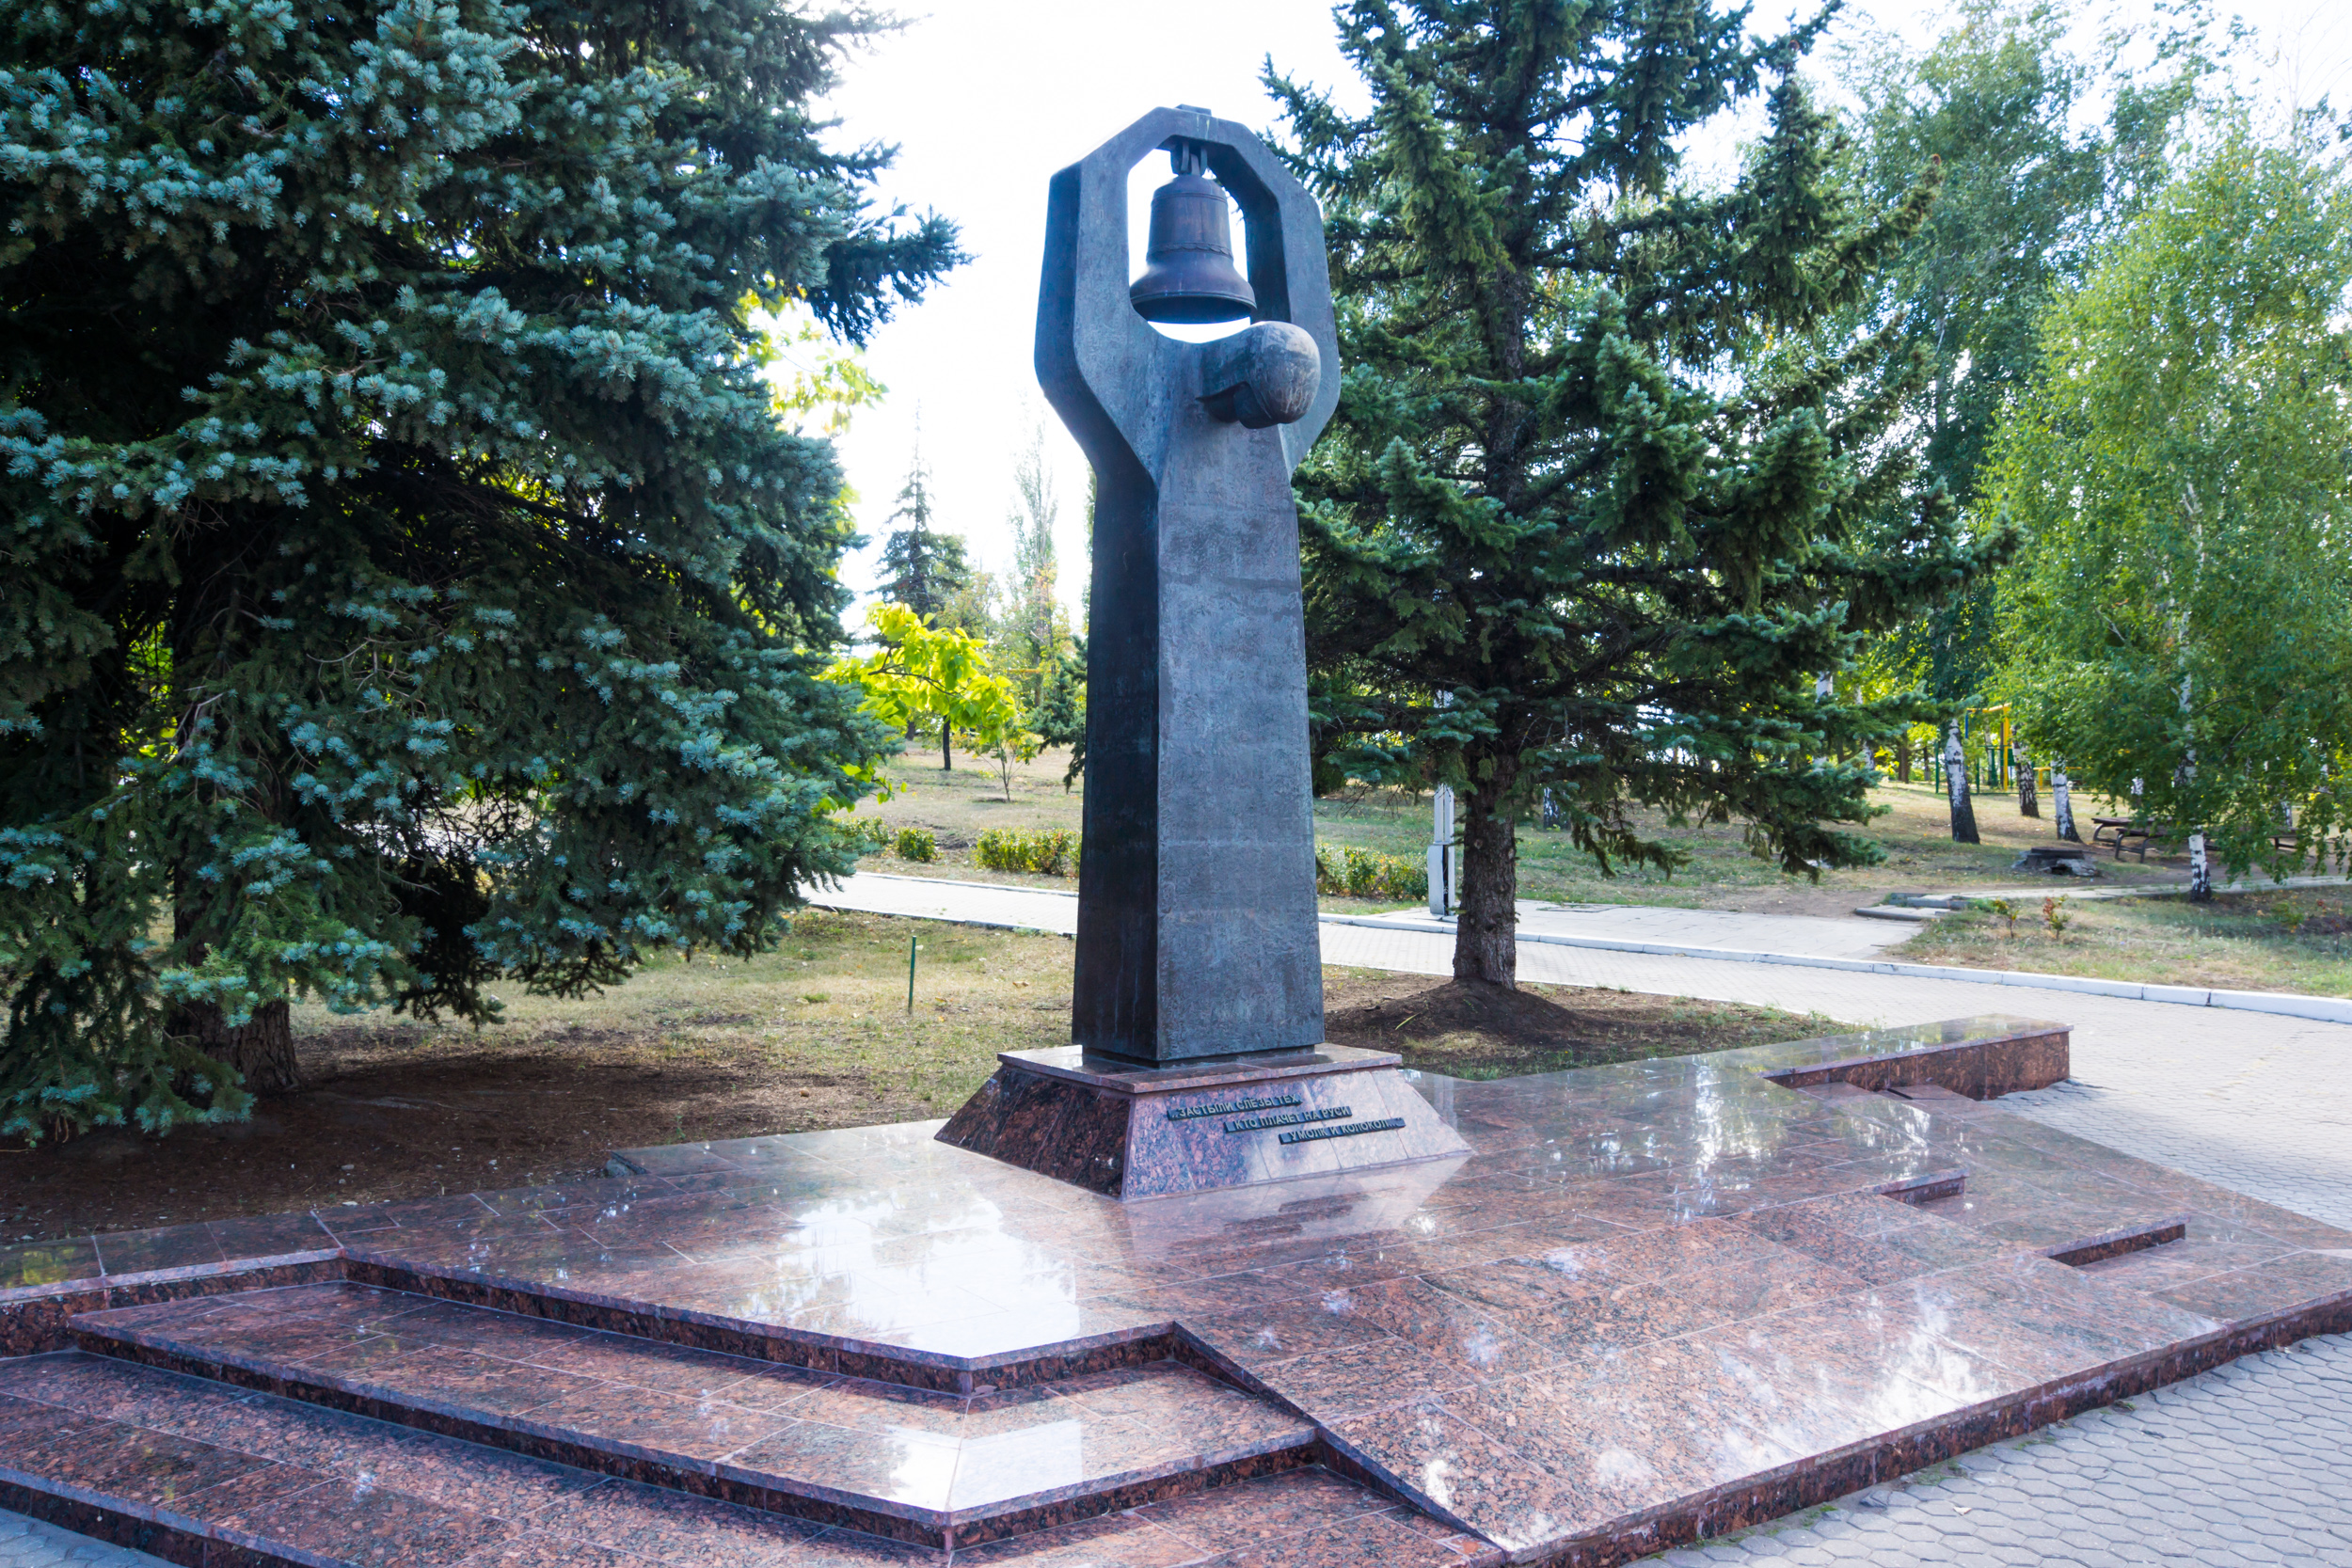 Monument-Molčaŝij Bell. The authors of the monument-Saratov sculptors brothers Andrei and Sergei Ŝerbakovy